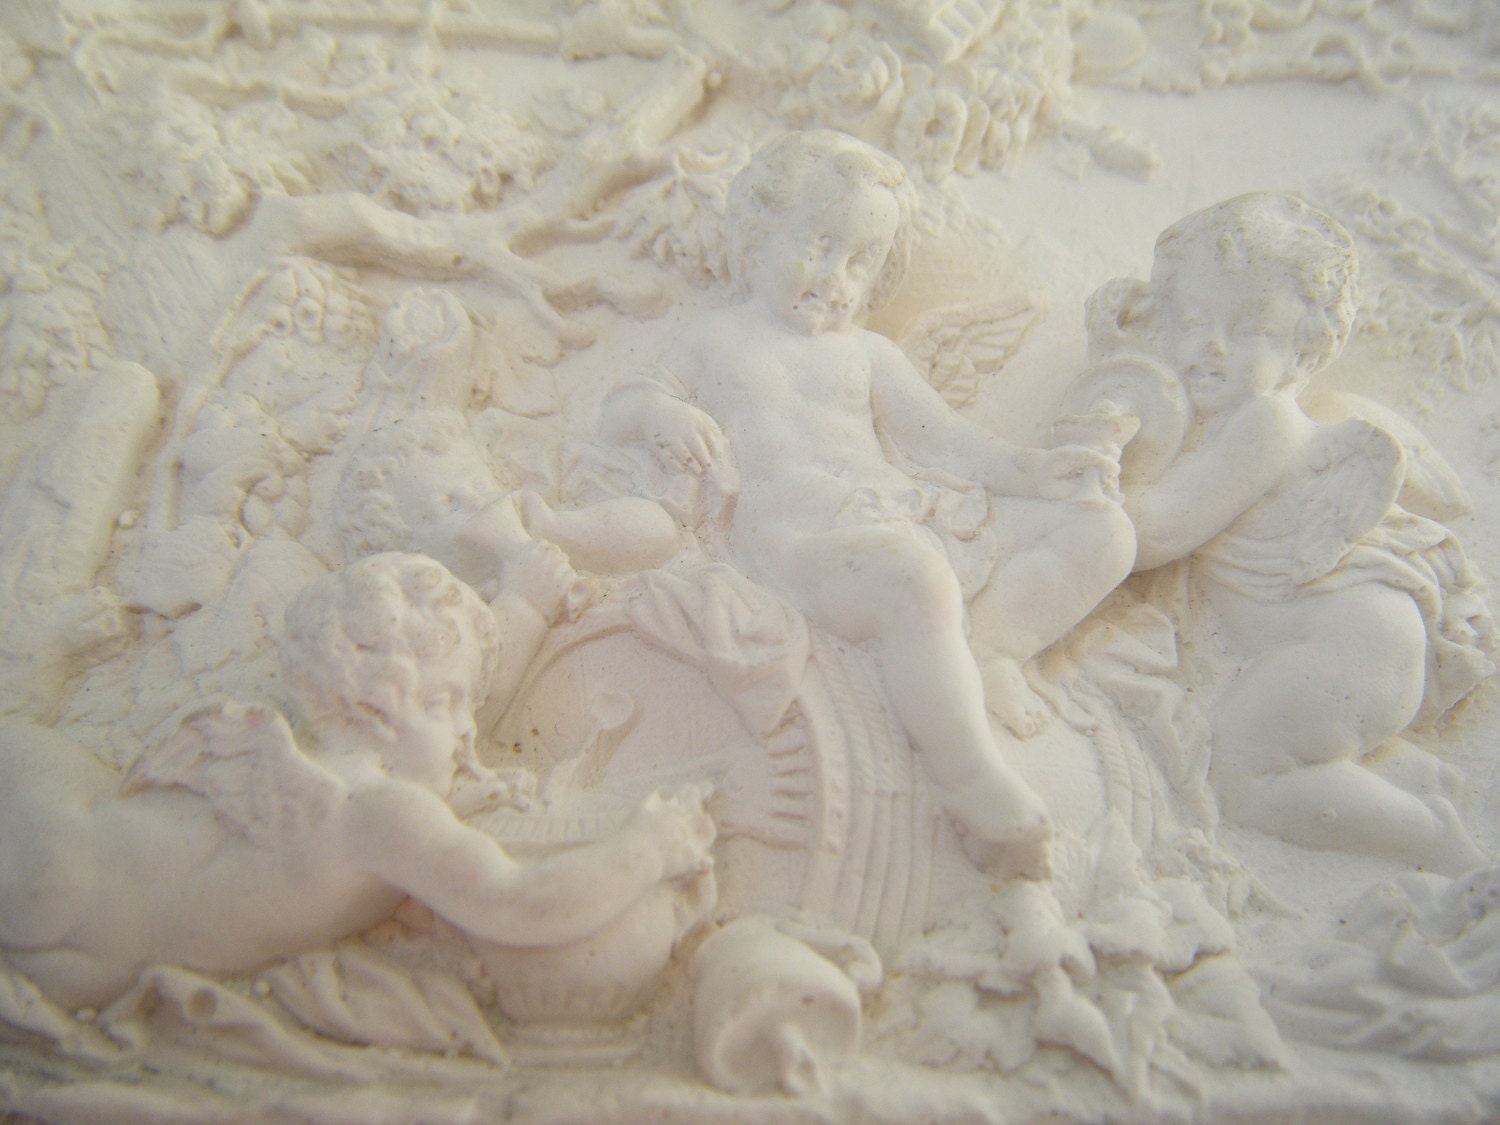 Plaster Of Paris Wall Designs: Vintage Plaster Plaque Plaster Wall Art Plaster Wall Decor